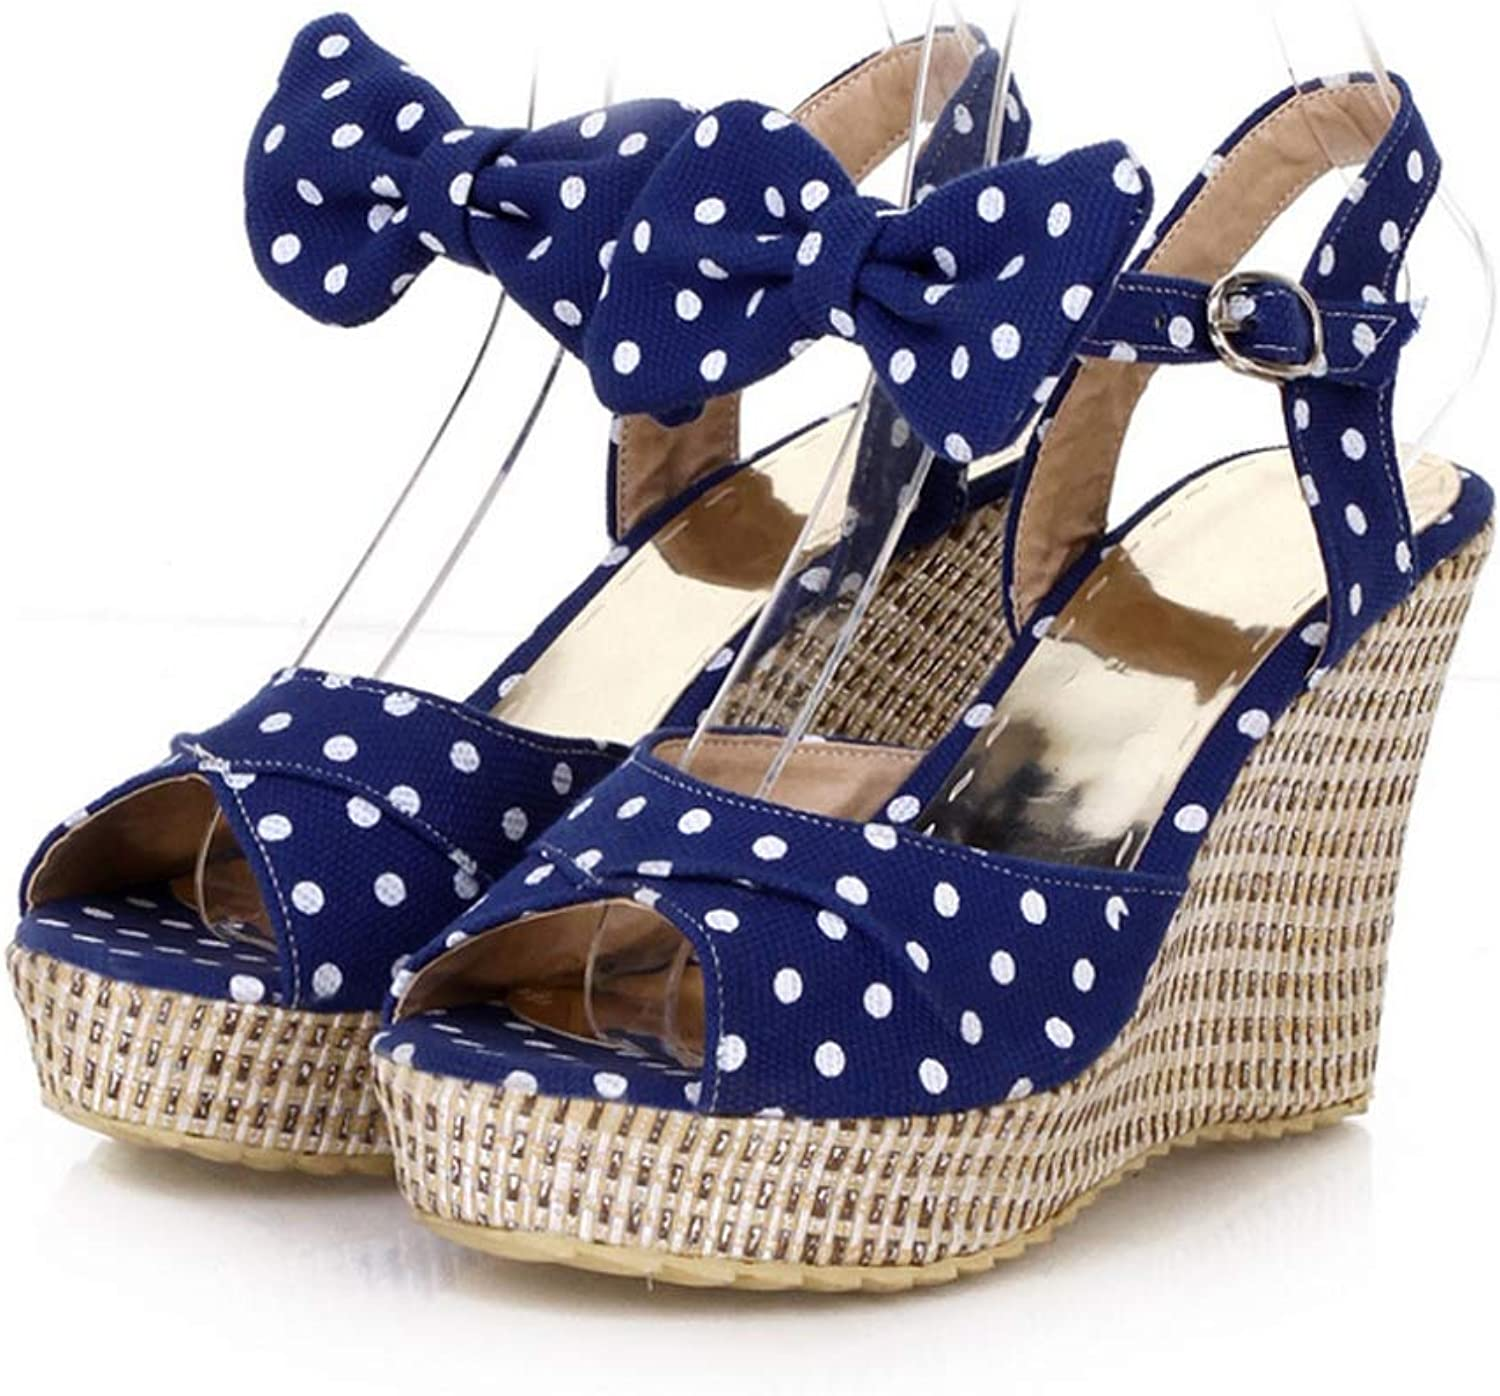 T-JULY Platform Wedge Sandal for Women Fish Mouth Buckle Strap Summer Fashion Comfortable Dot Bow Ladies shoes